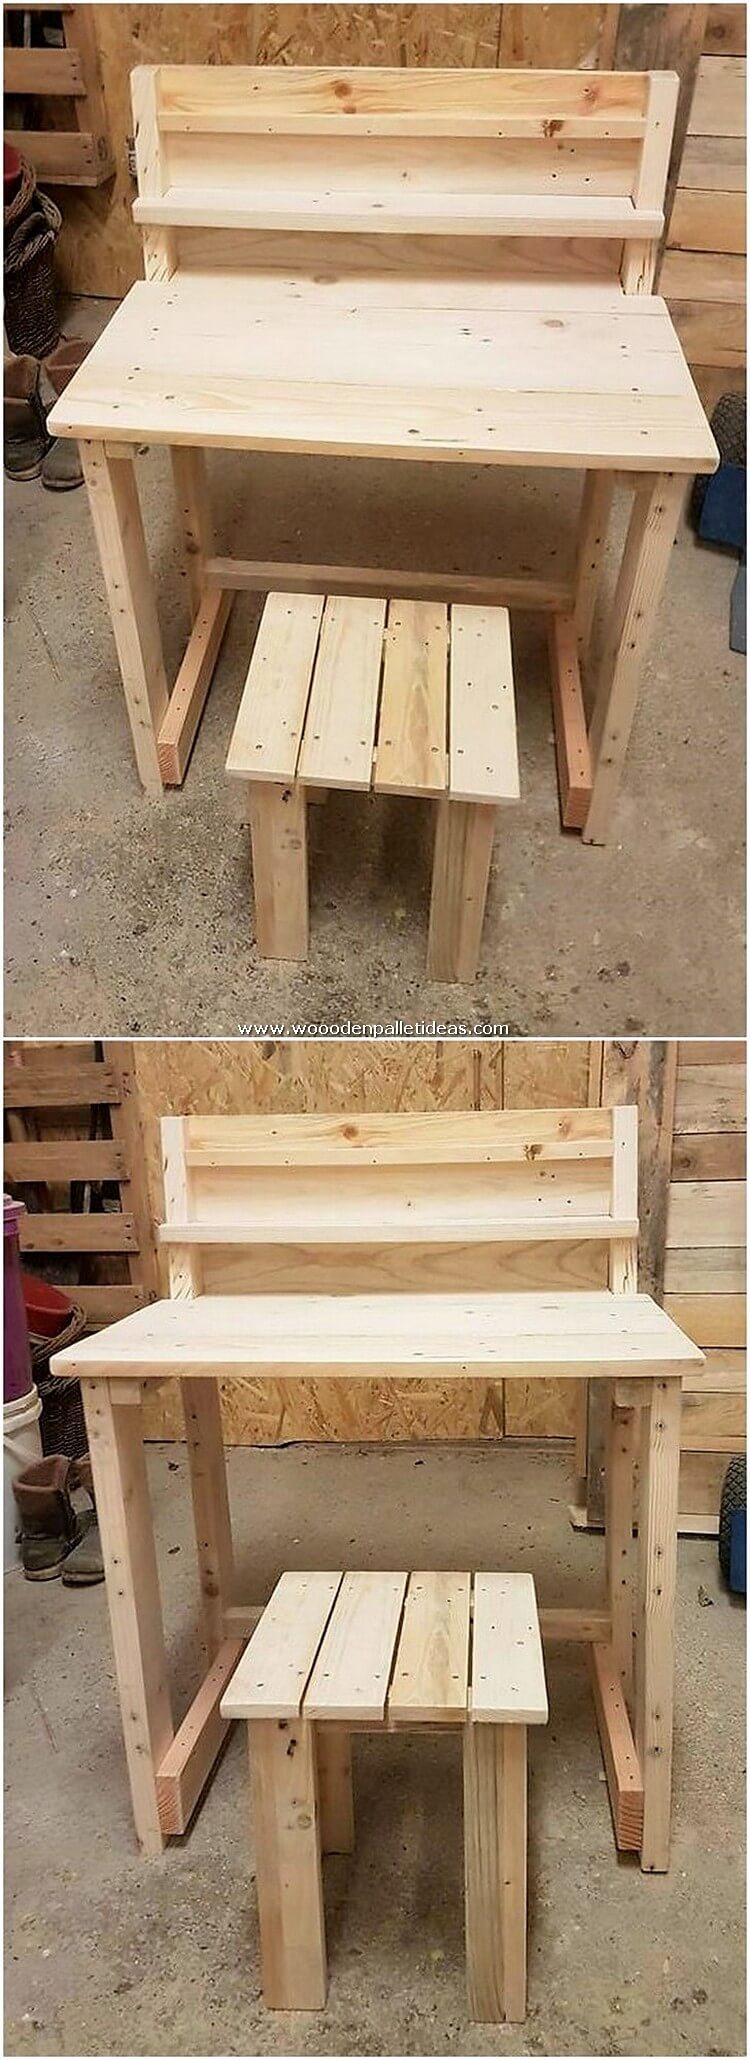 Pallet-Desk-Table-and-Stool